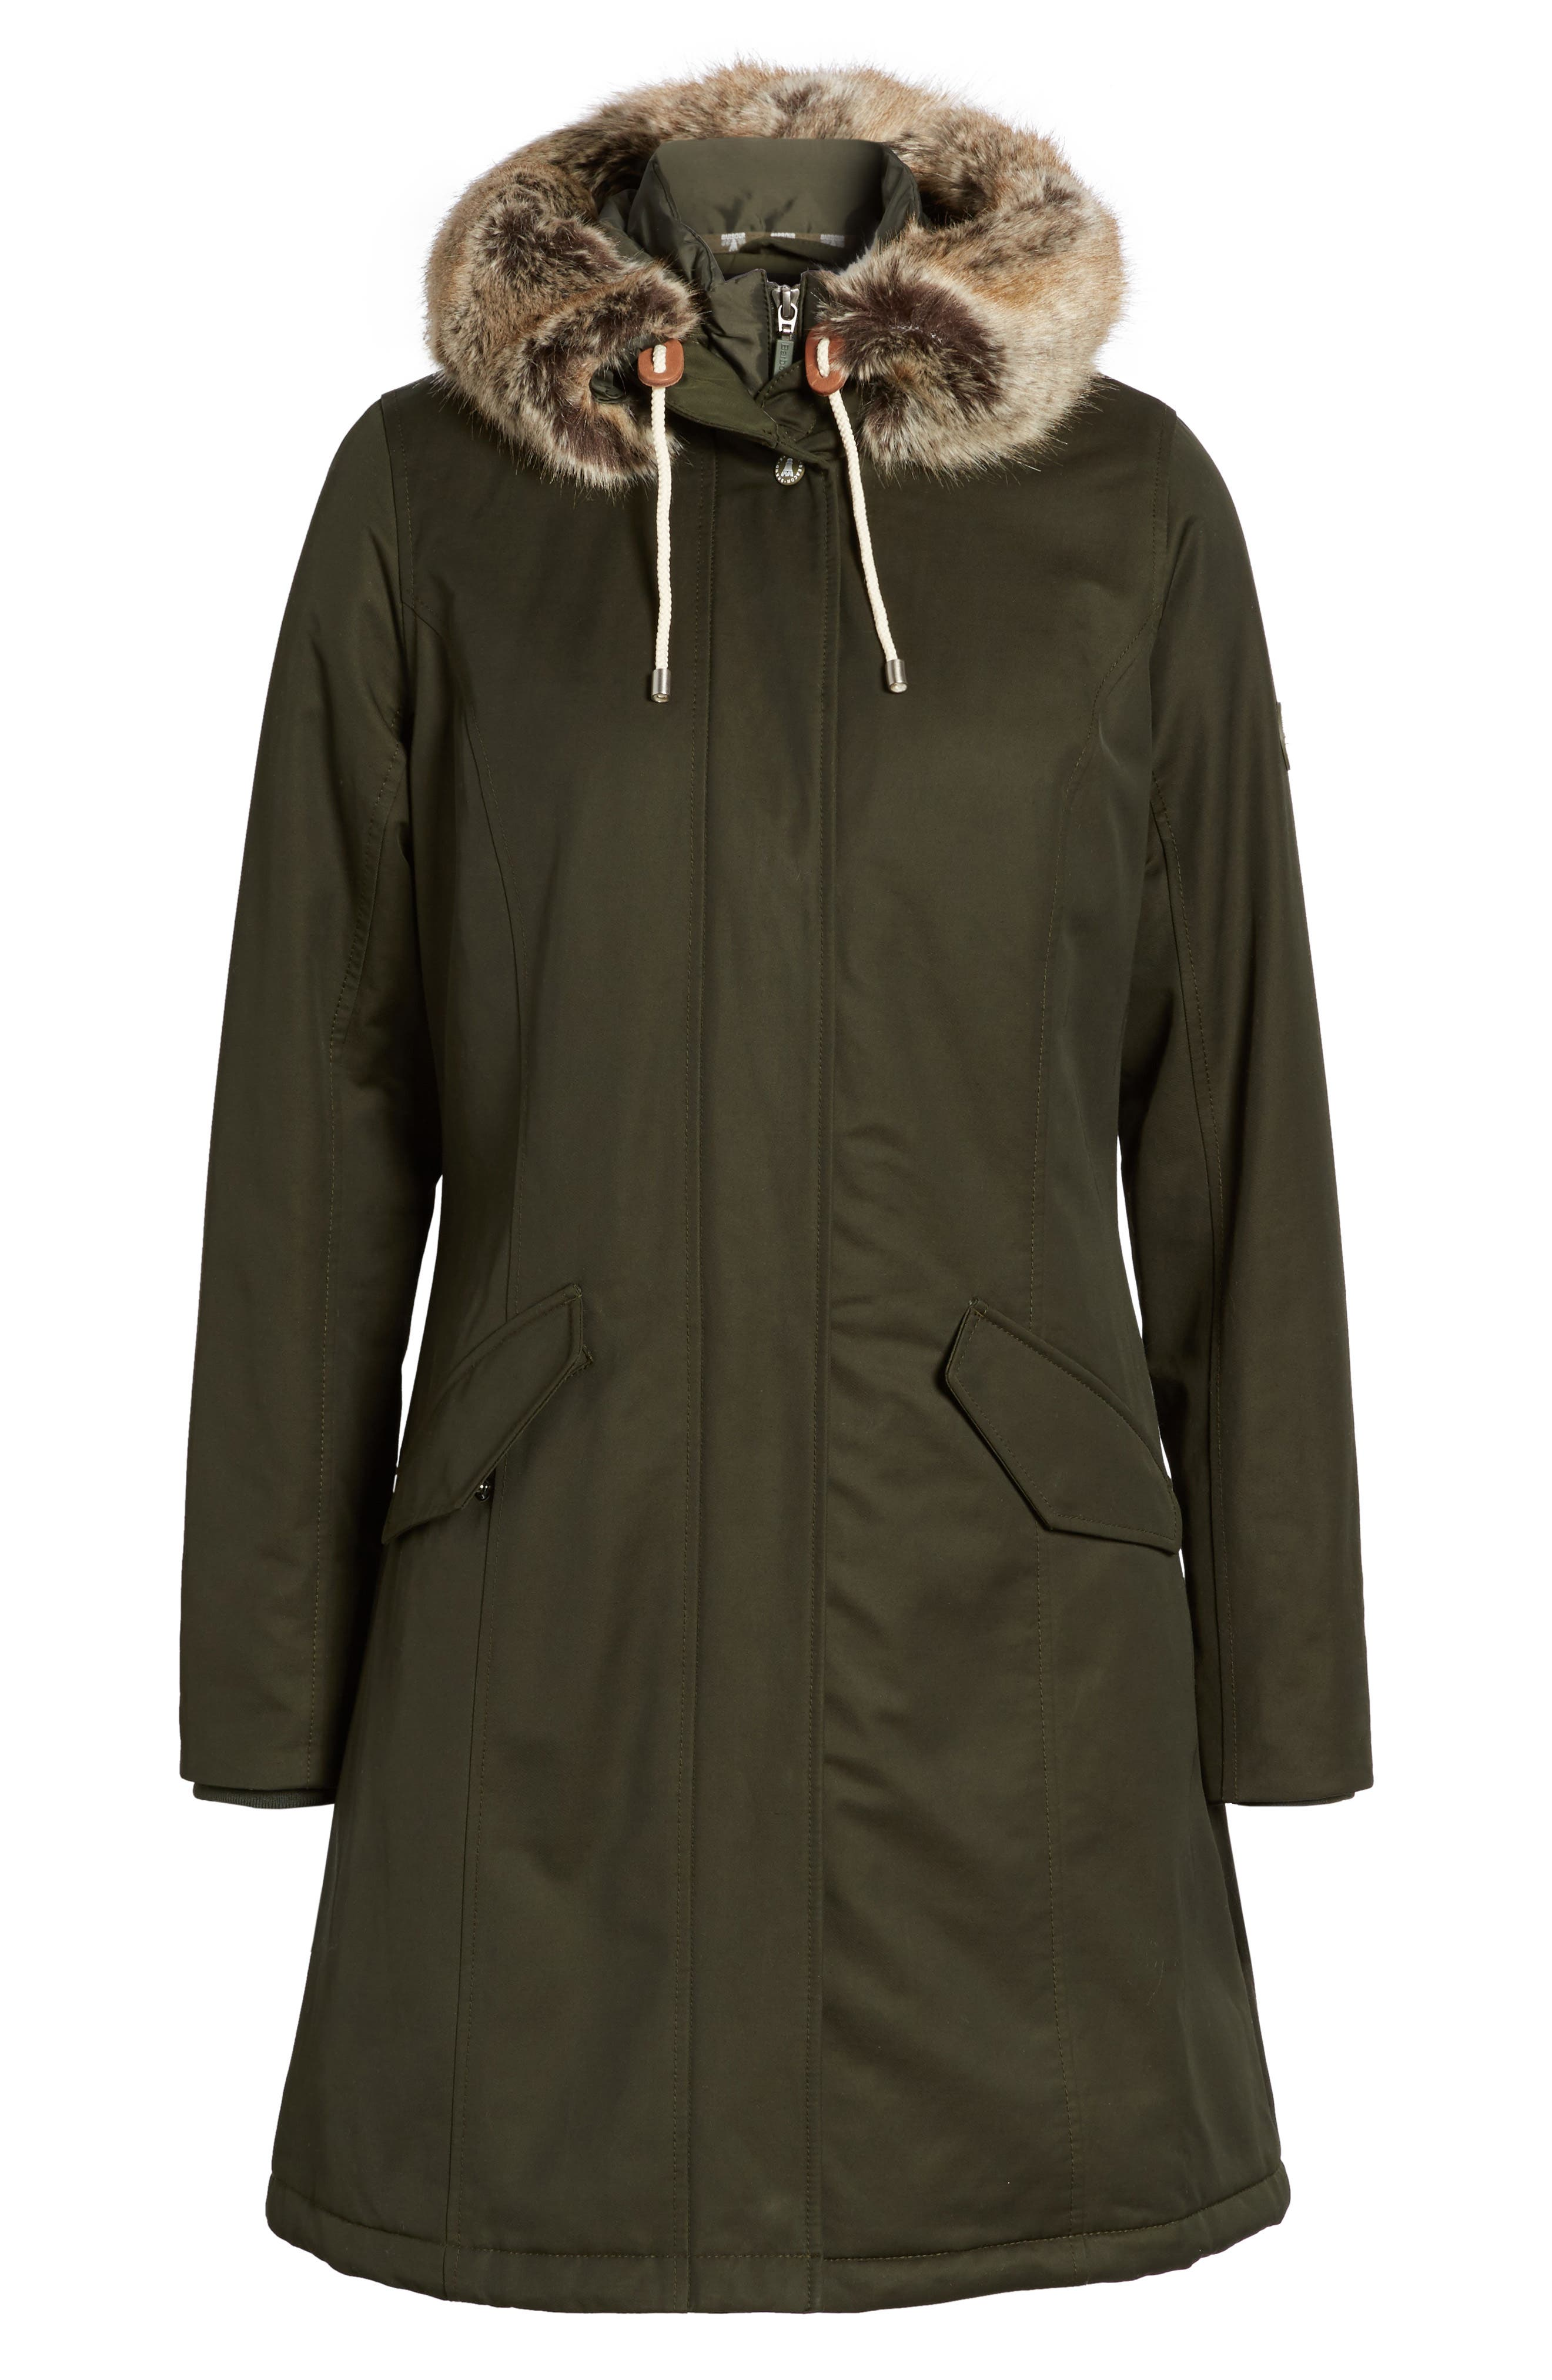 Filey Waterproof Hooded Jacket with Faux Fur Trim,                             Alternate thumbnail 5, color,                             302